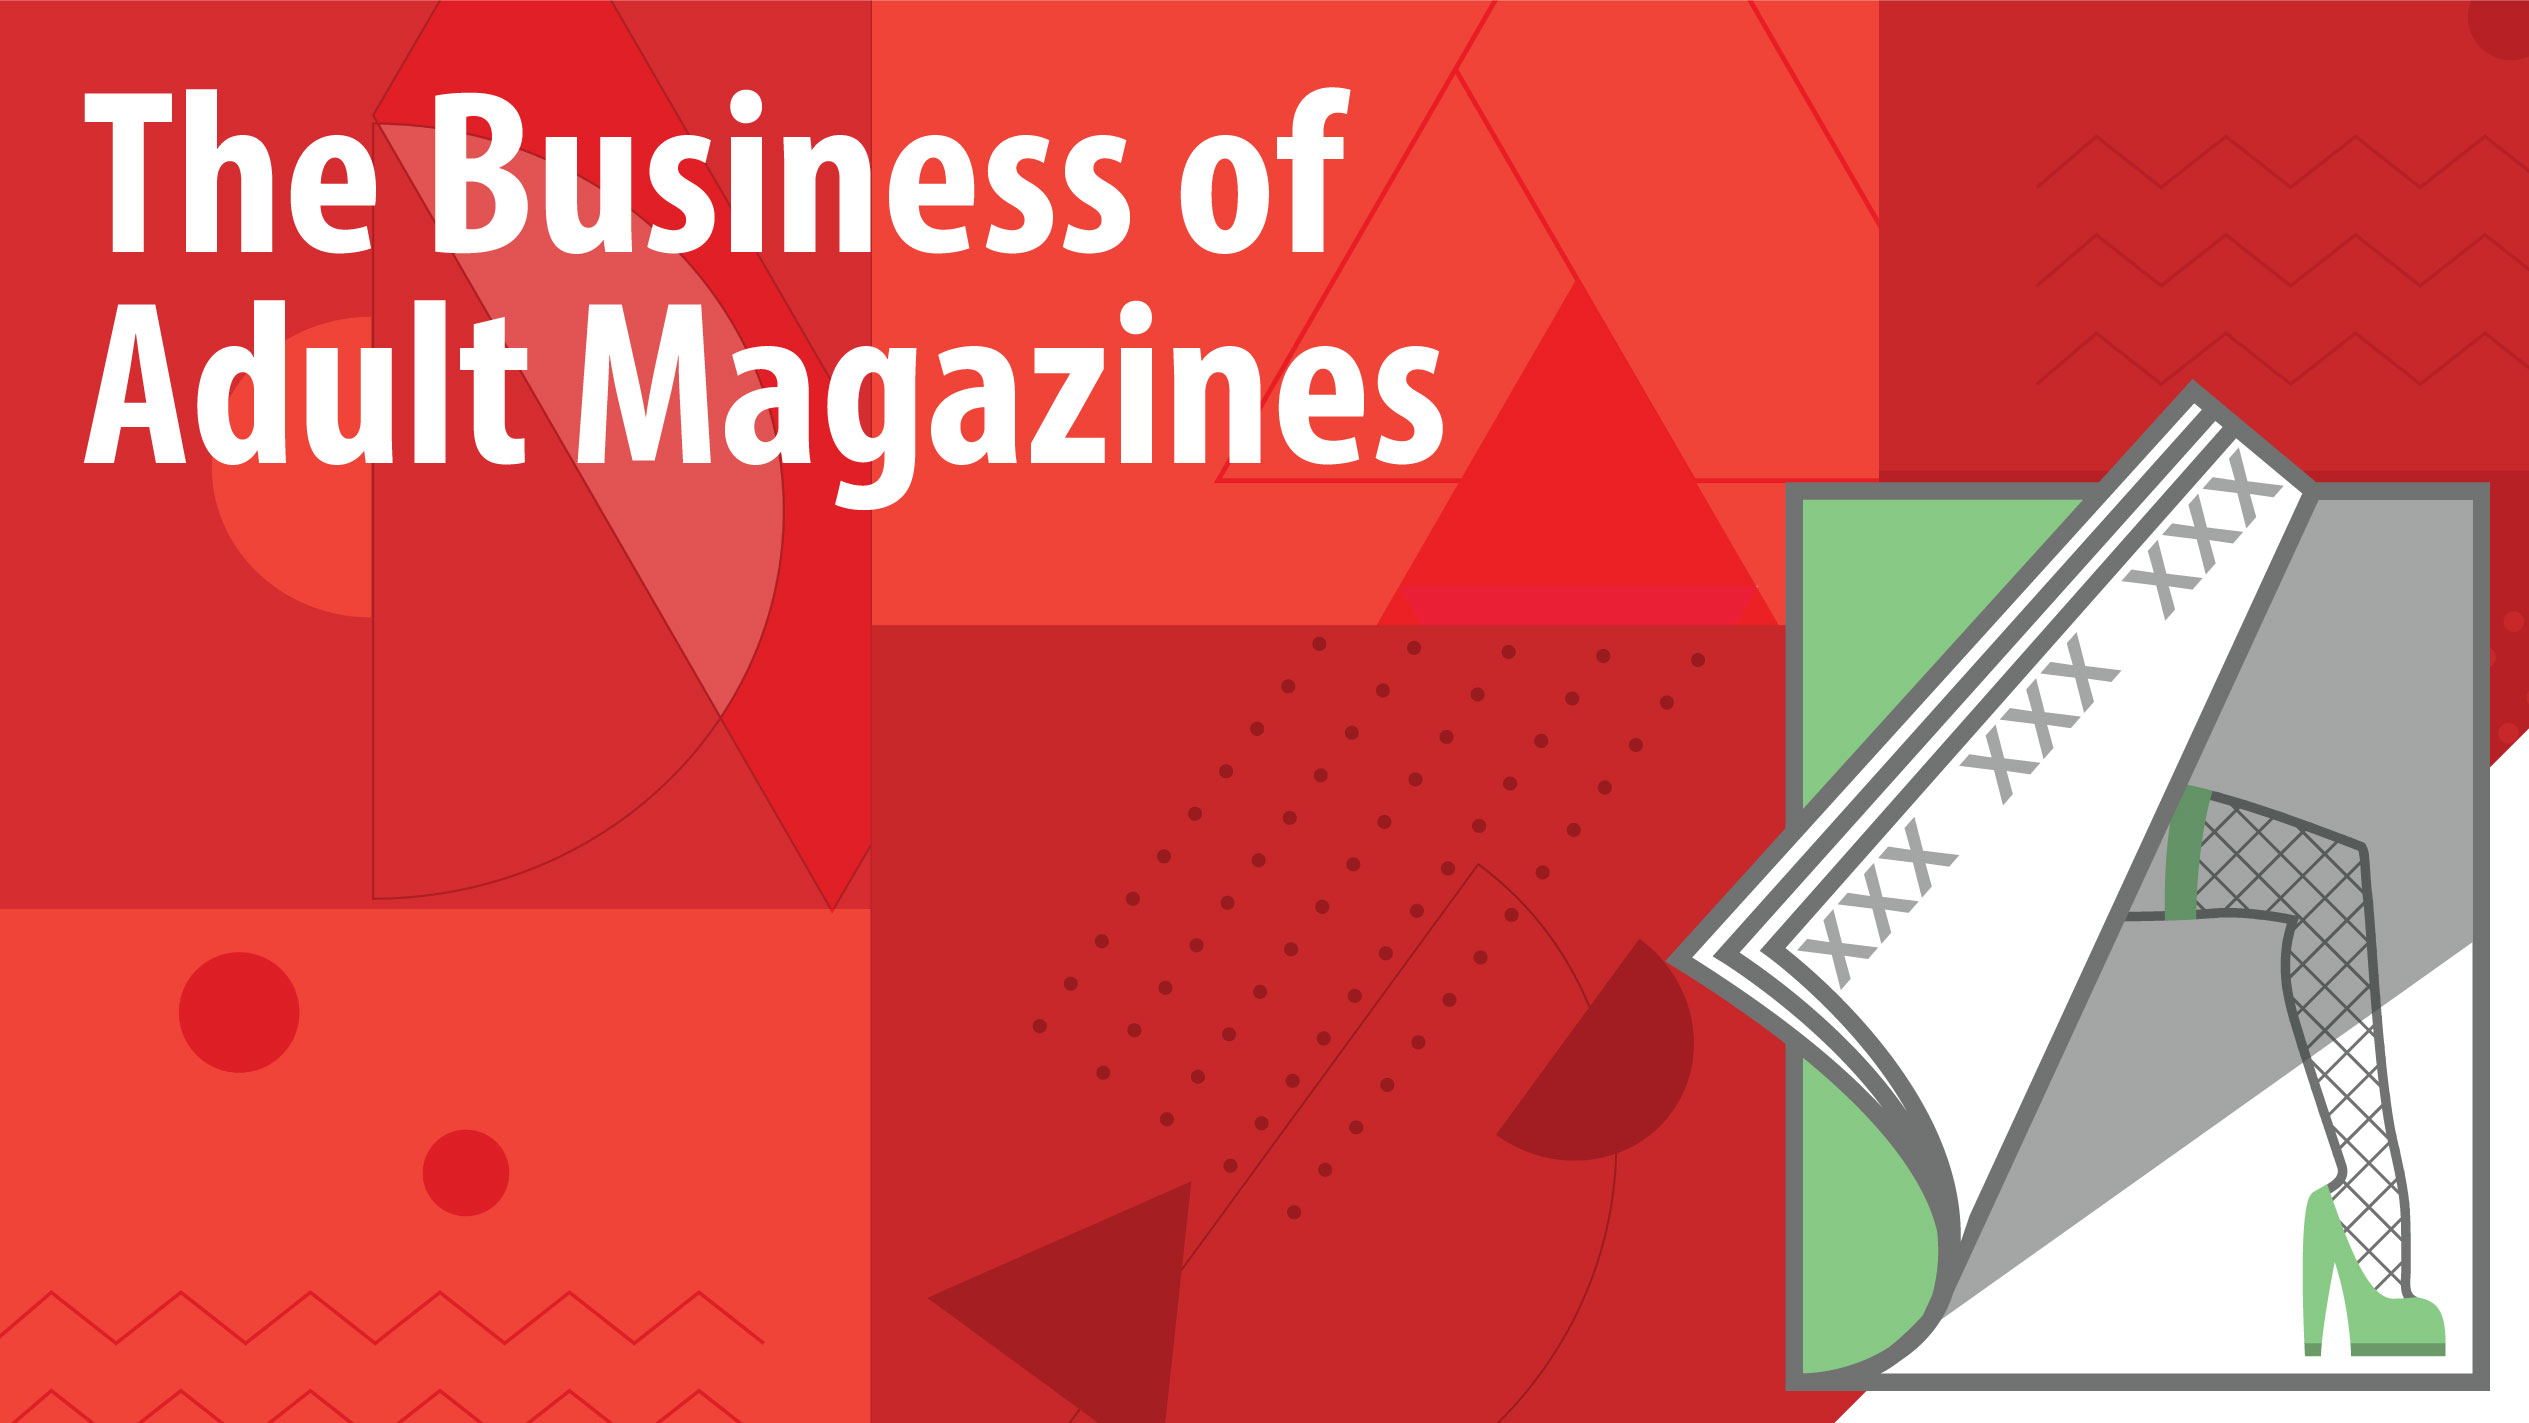 Learning About The Business of Adult Magazines